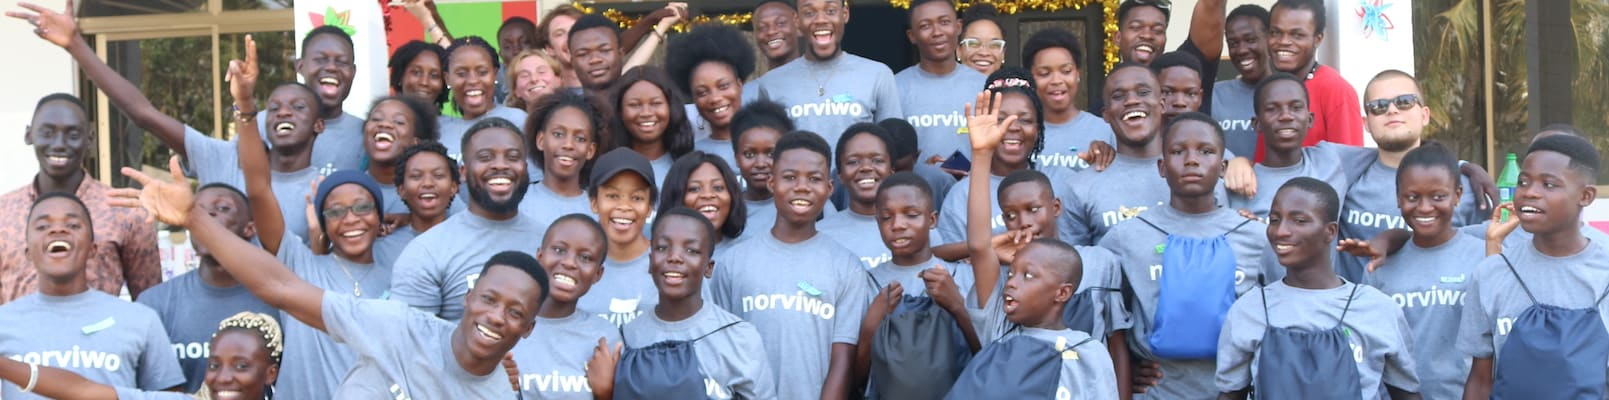 About Future of Africa, assisting homeless youth in Ghana